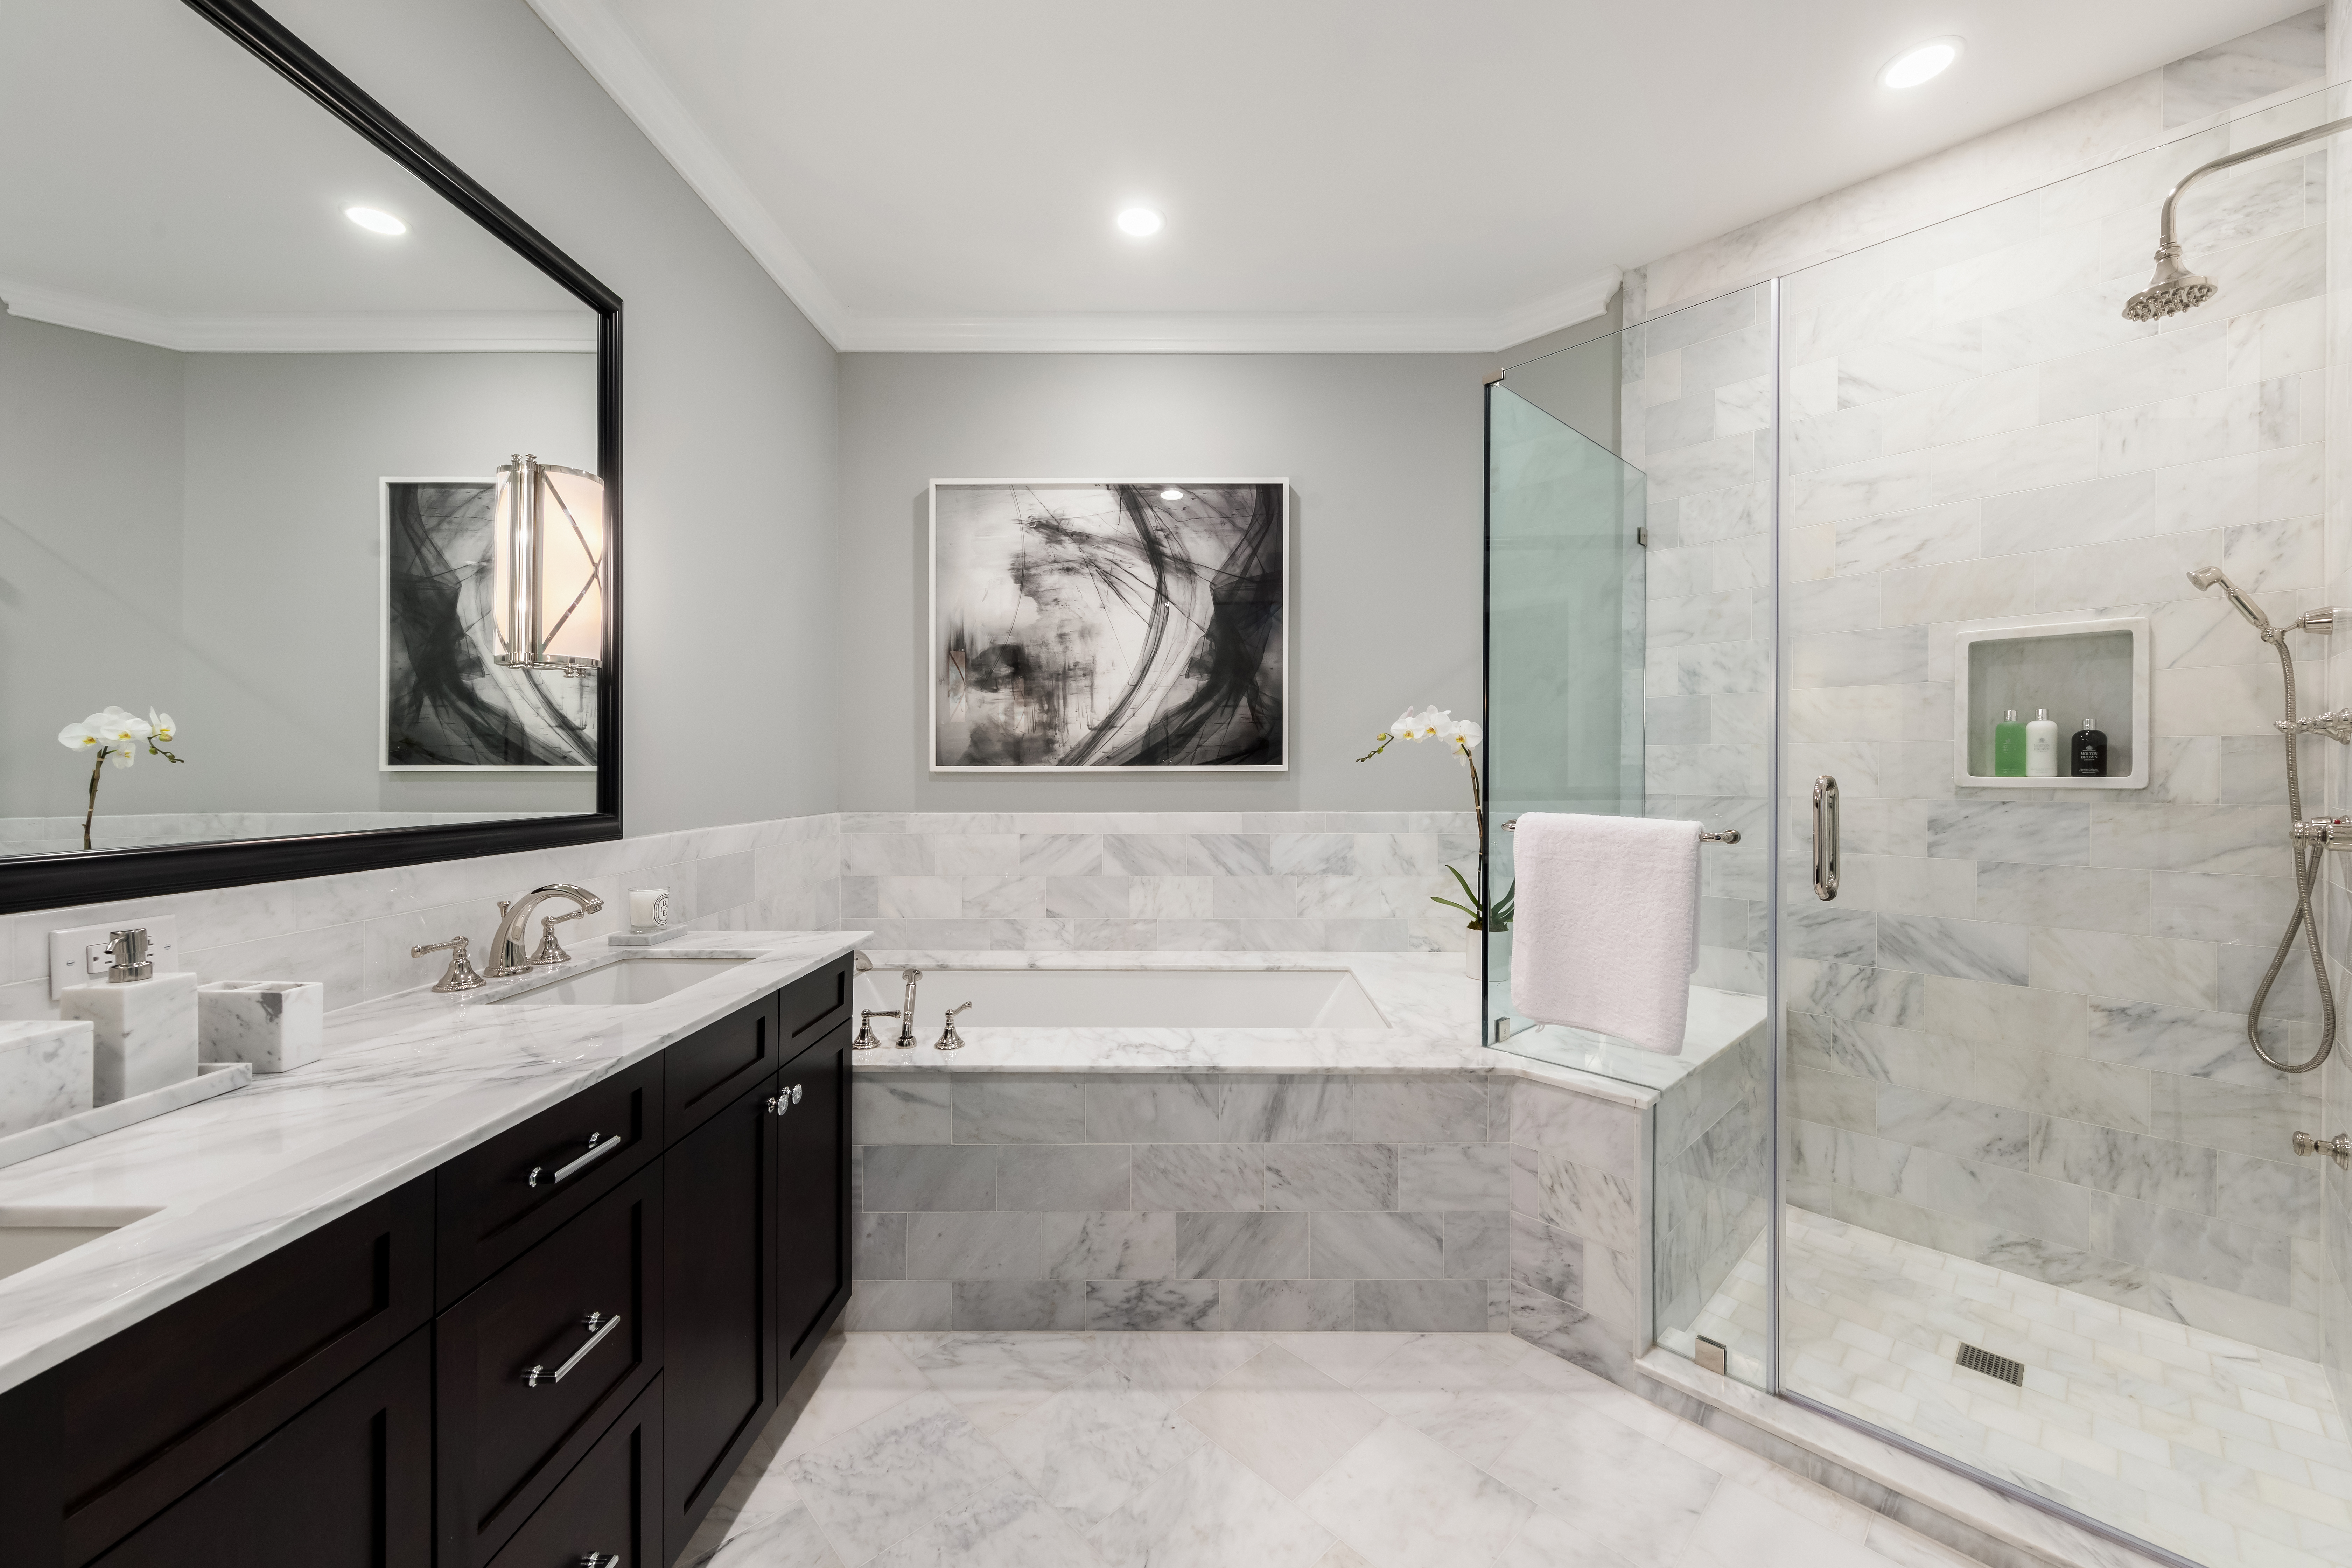 """Choice of materials can contribute to a bathroom's overall sustainability. As the company's name suggests, all of Brasstech's fixtures are made of brass—""""a metal that you can melt back down and reshape,"""" said Chris Chmura, the company's hospitality business development manager."""